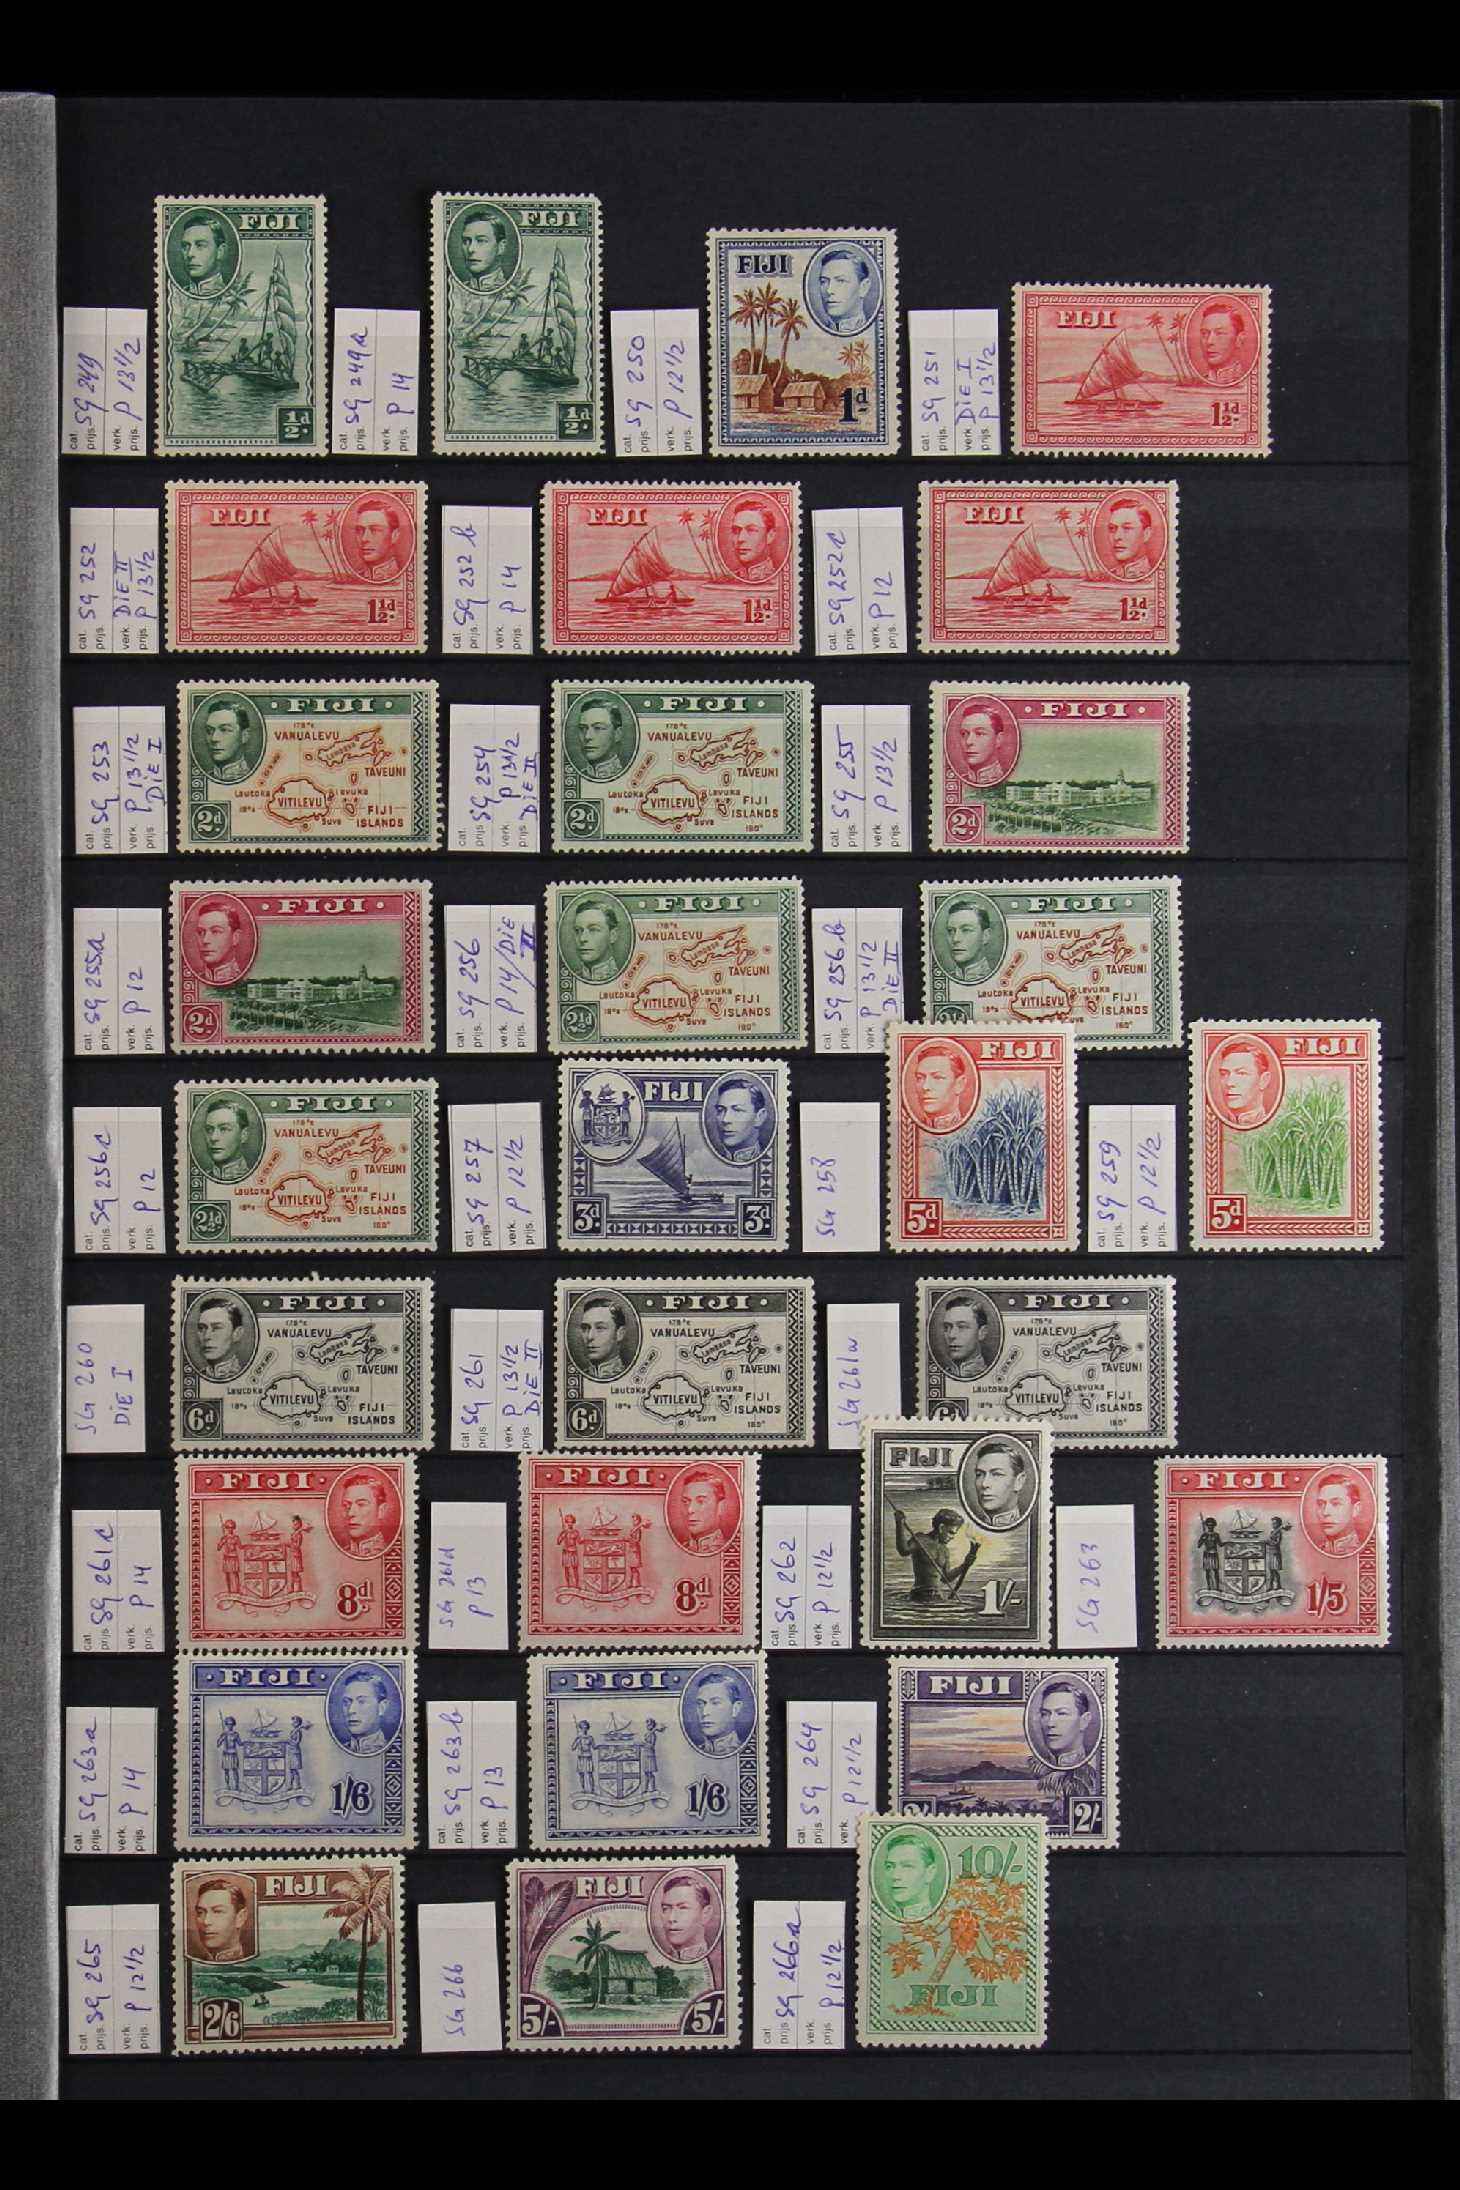 FIJI 1903-70 FINE MINT COLLECTION incl. 1903 set to 5d (excl. ½d), 1904-09 ½d & 1d, 1906-12 to 2½ - Image 2 of 9